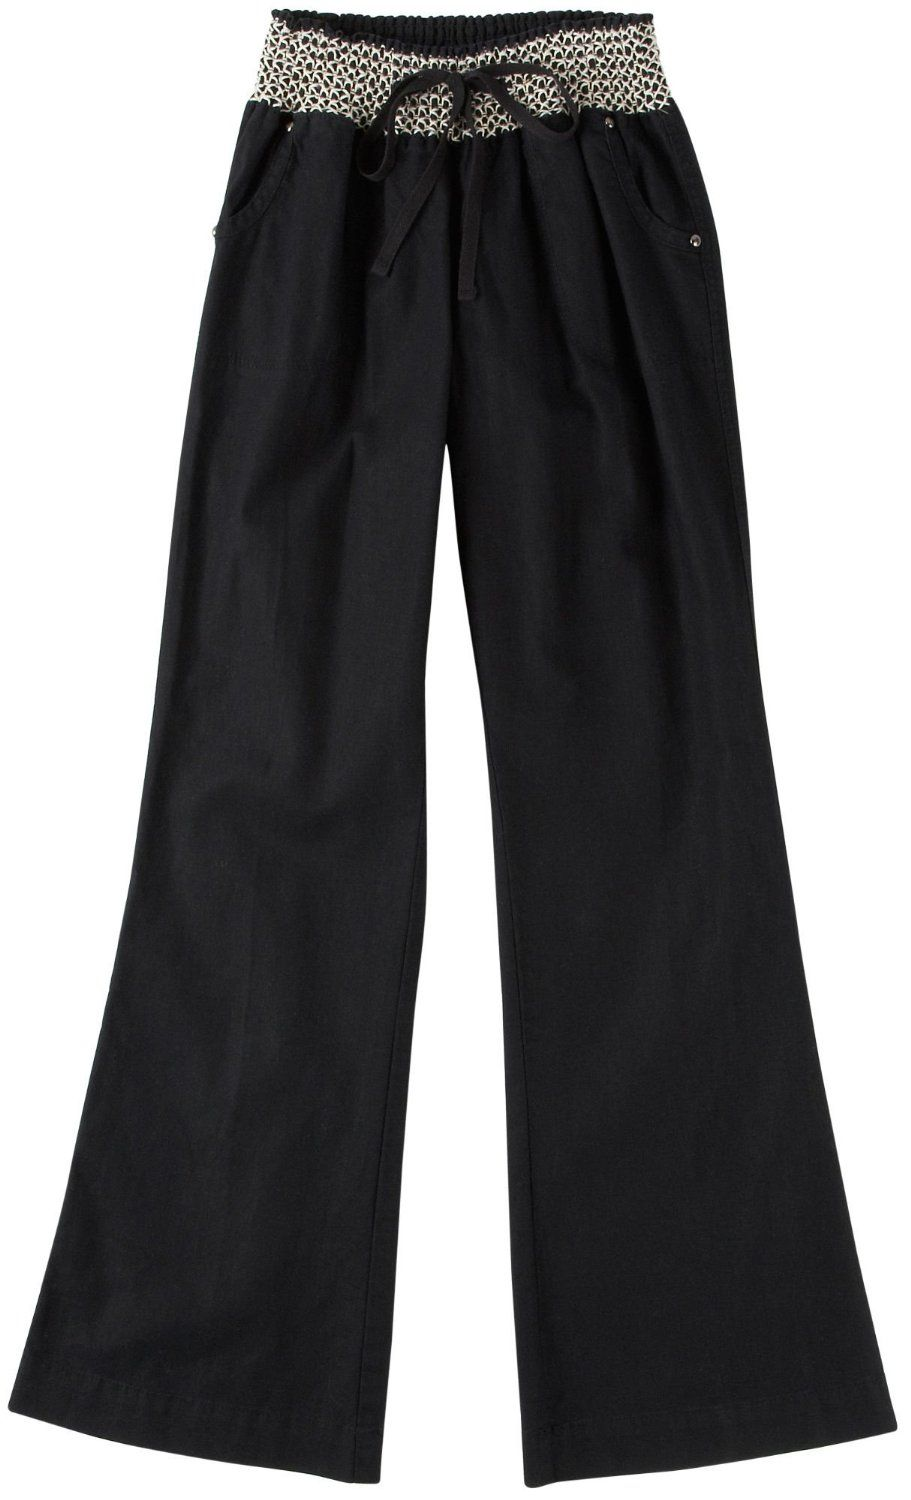 Tyte Women's Solid Smocked Waist Linen Pants -- They should be called LOW LOW RISE. - They are too long for me - but that is ok i can hem them which is much better than if they were too short. - These are way cool & very comfortable. http://www.amazon.com/exec/obidos/ASIN/B00B6A8XQG/electronicfro-20/ASIN/B00B6A8XQG